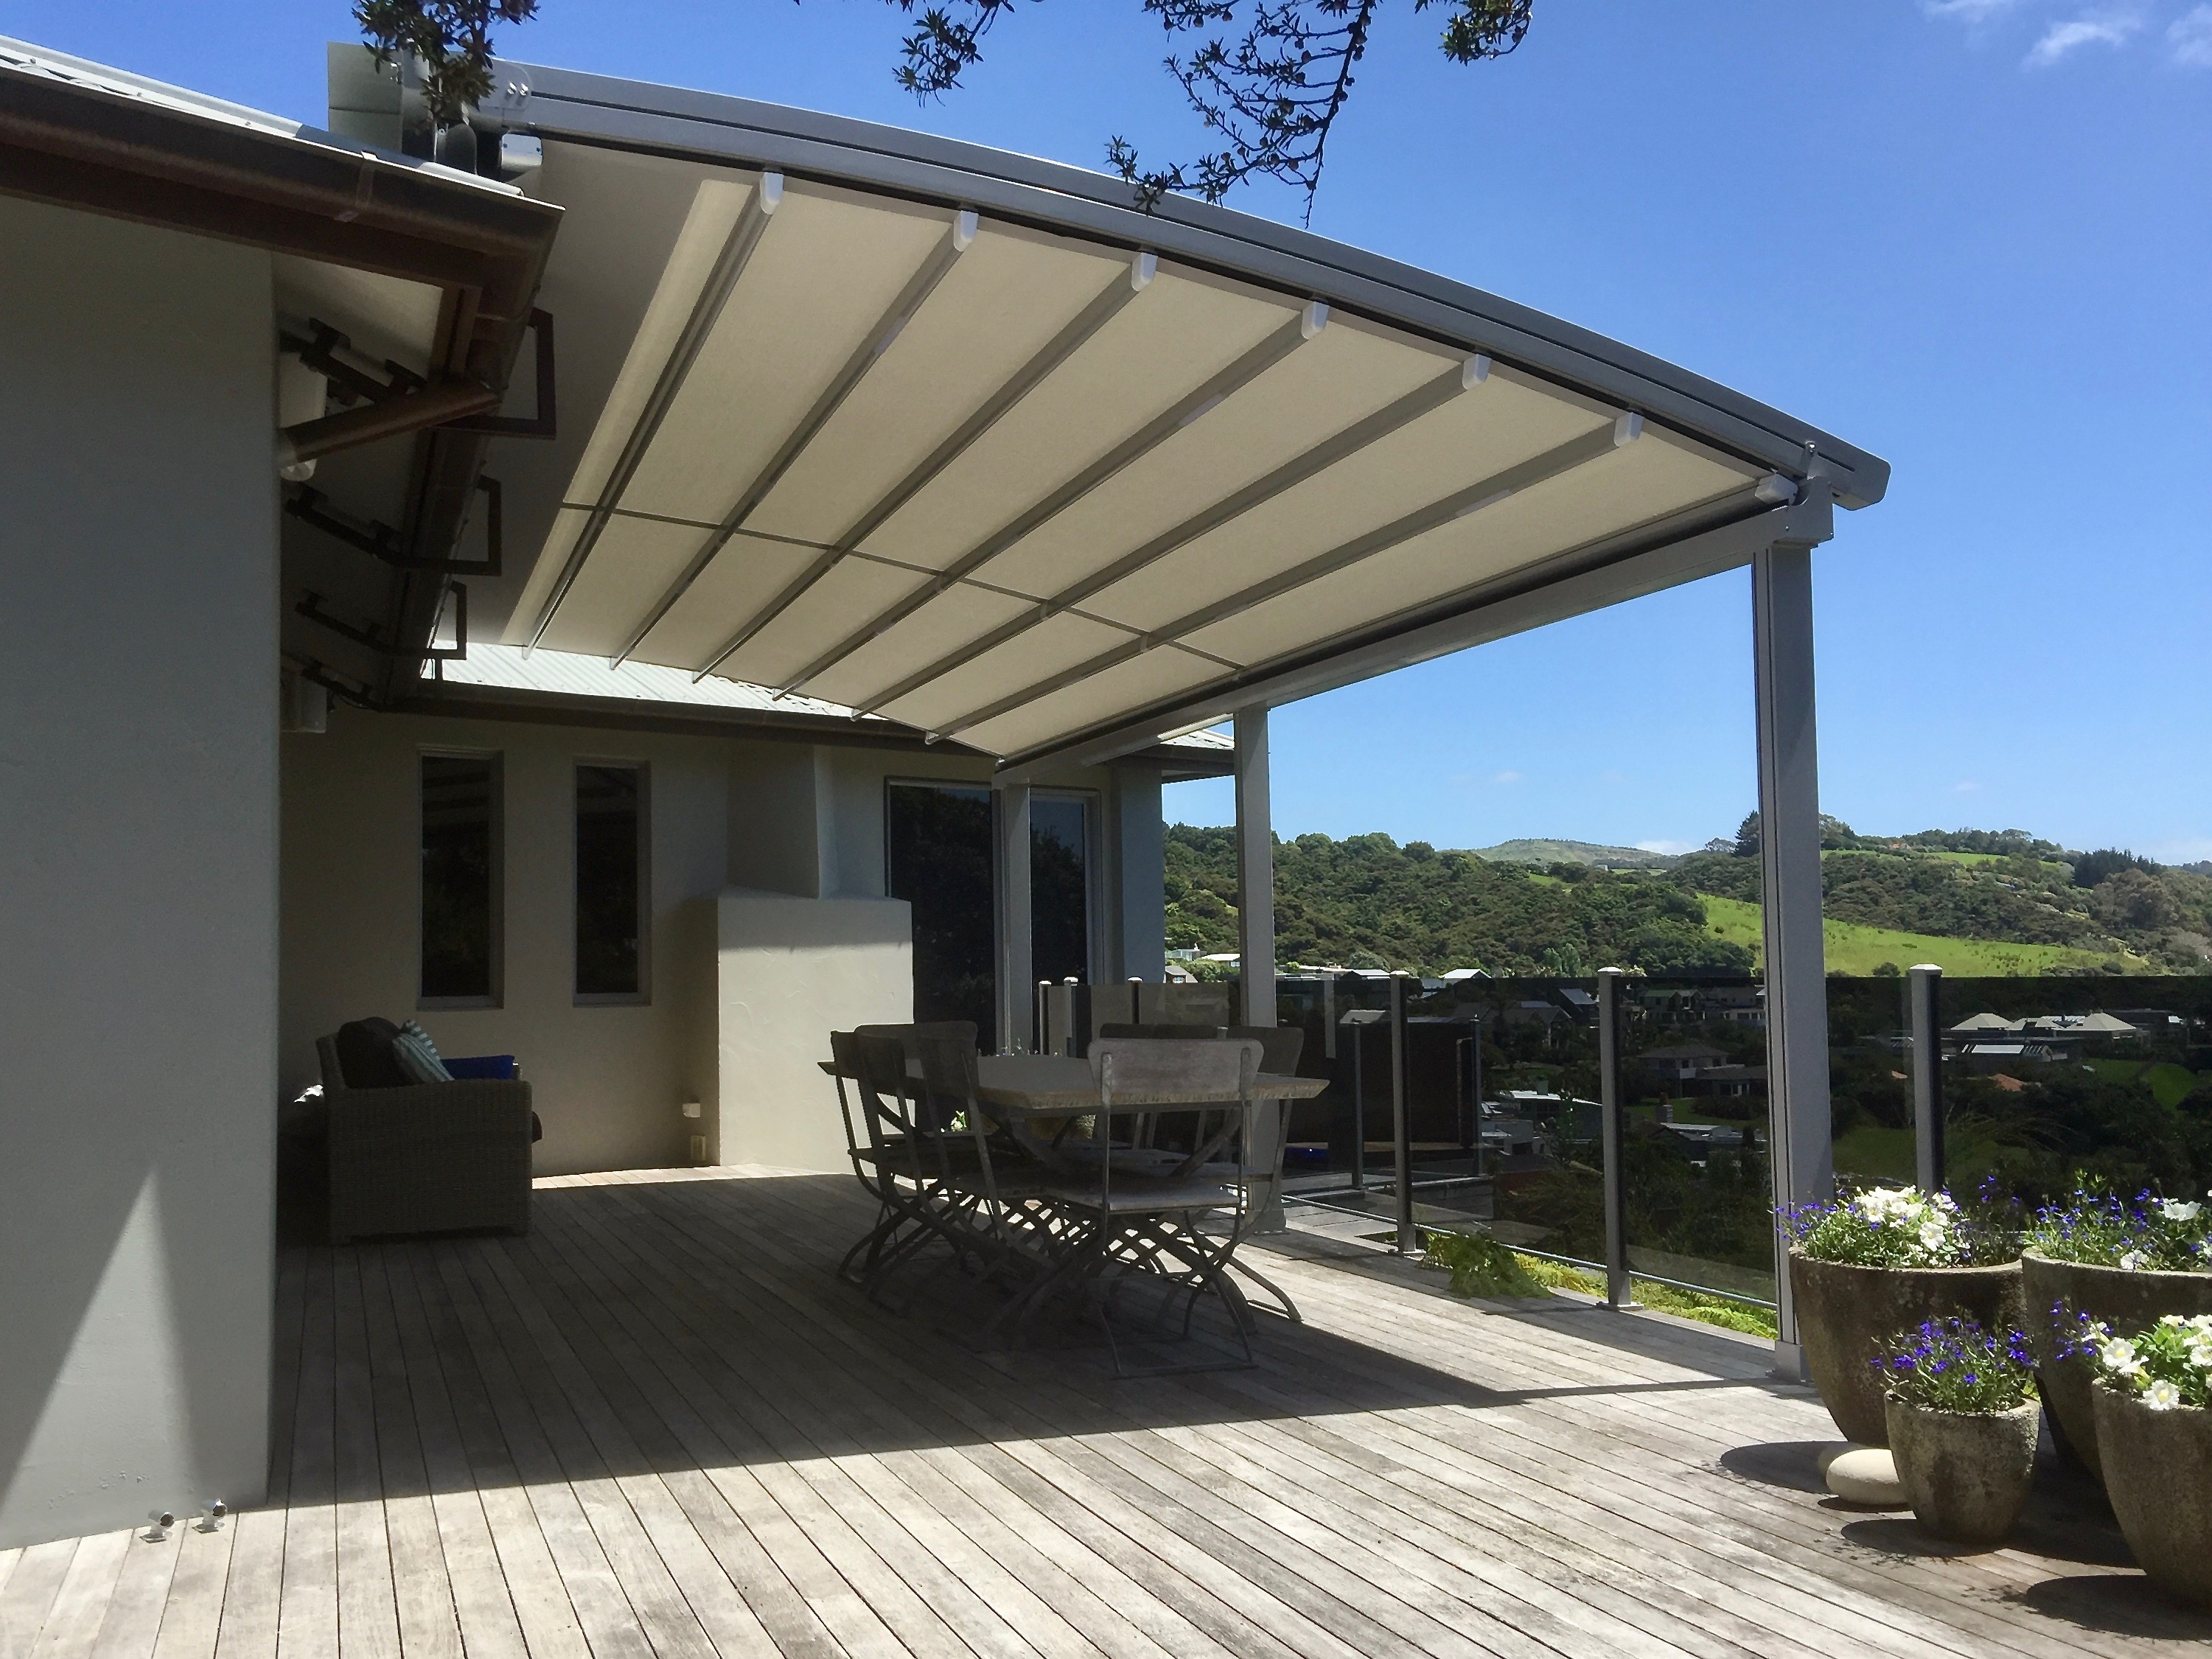 Oztech Retractable Awnings Installers In Whangarei